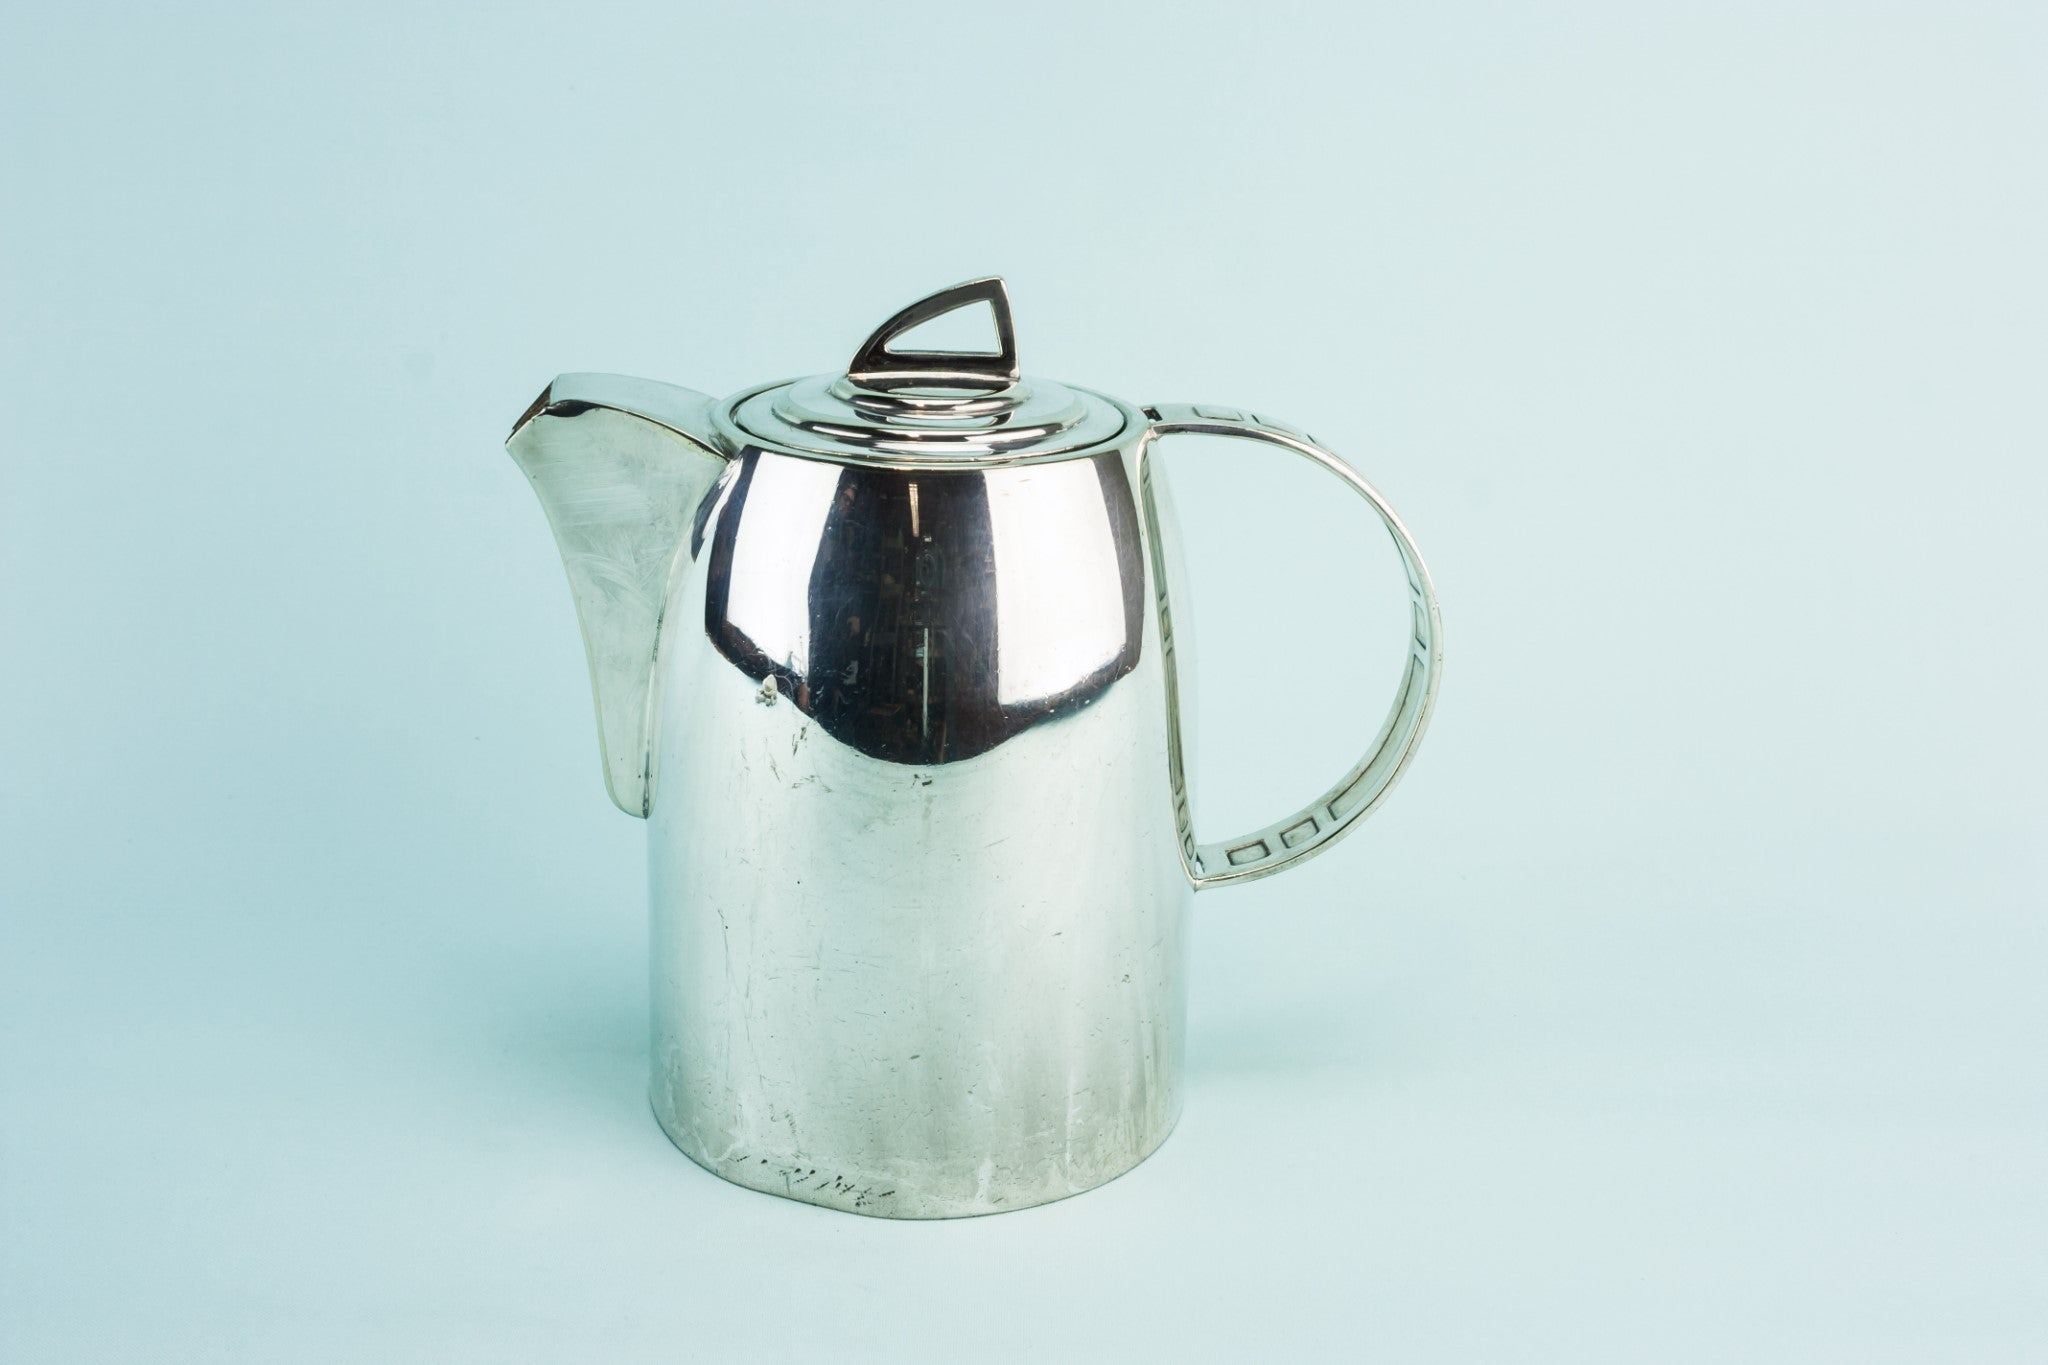 Art Deco coffee pot